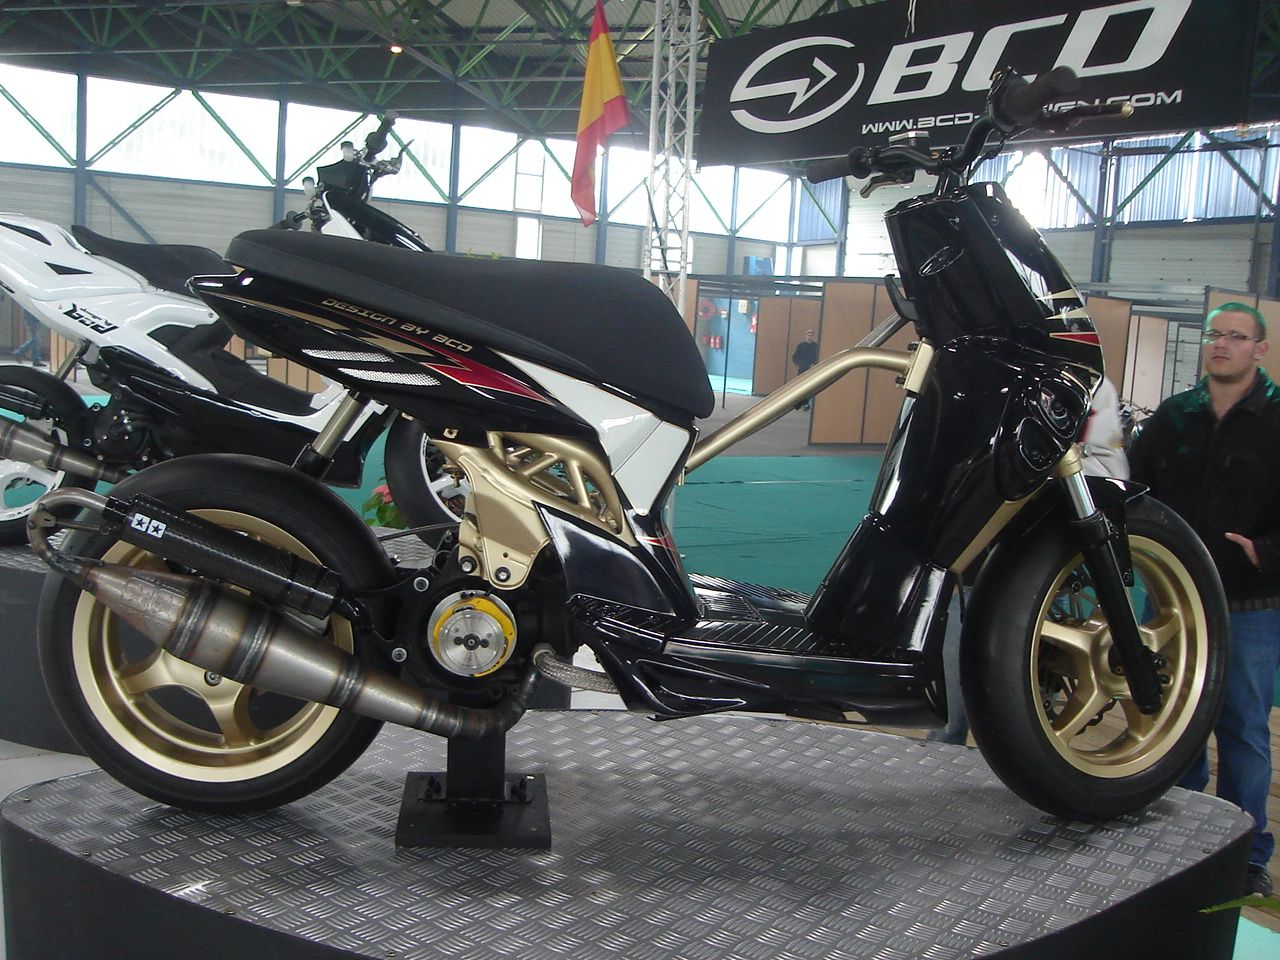 mbk stunt lc tuned by bcd 50cc scooters scooter custom moped scooter scooter 50cc. Black Bedroom Furniture Sets. Home Design Ideas